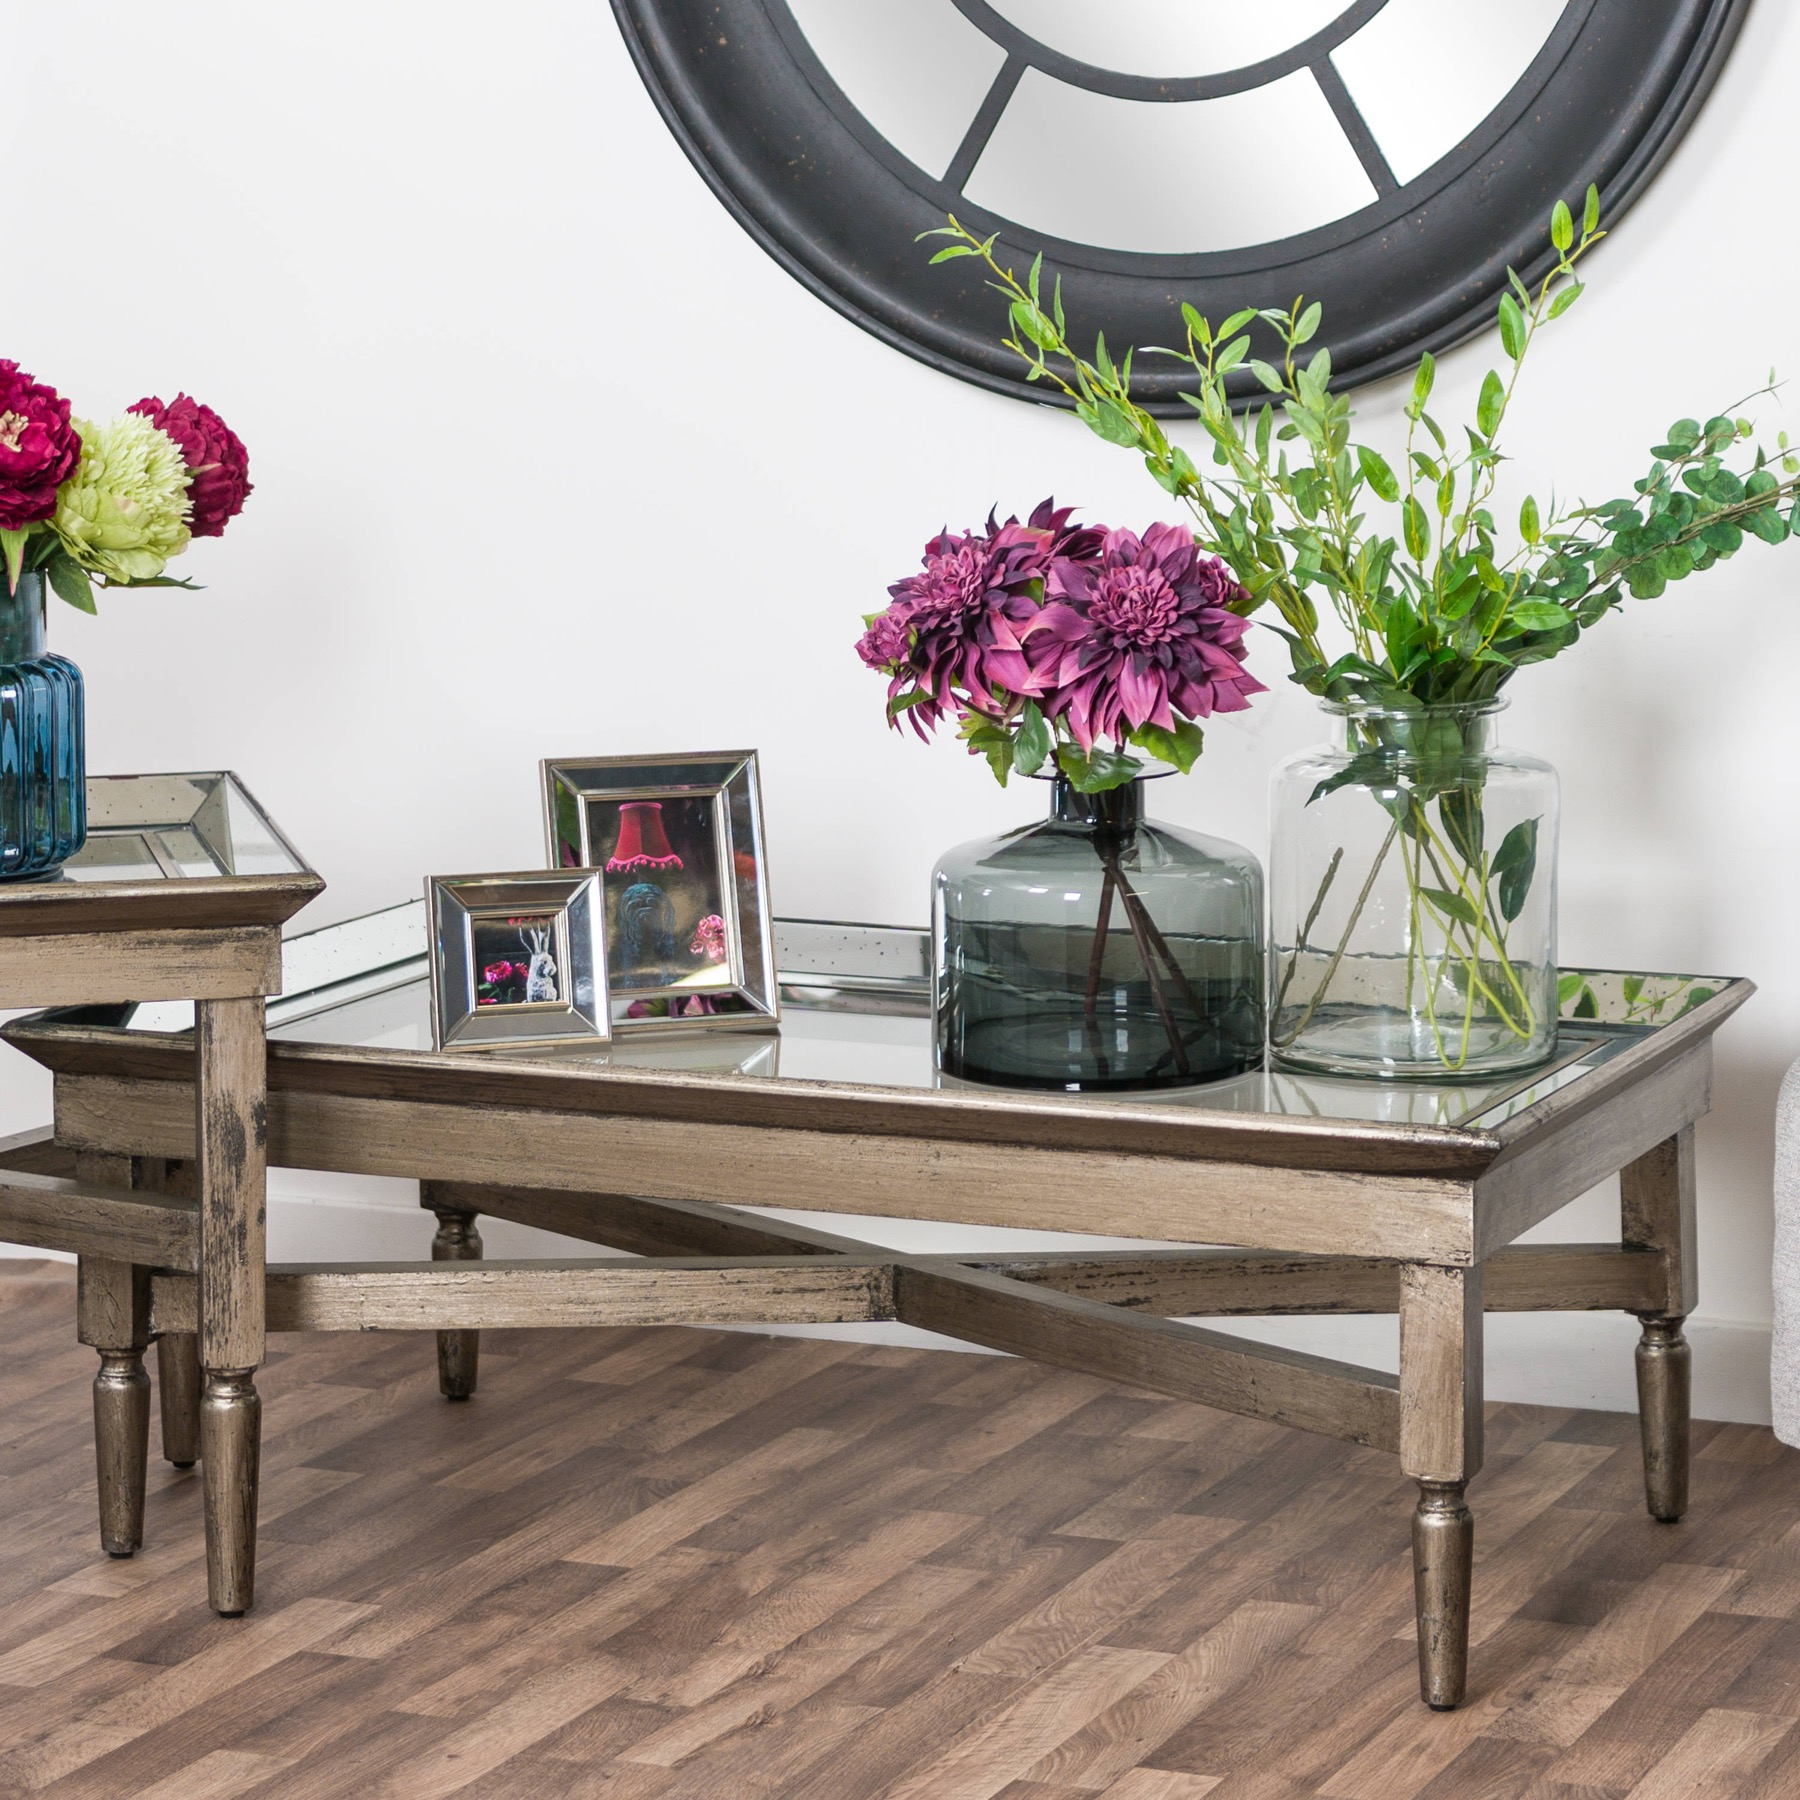 Astor Glass Coffee Table With Mirror Detailing - Image 4